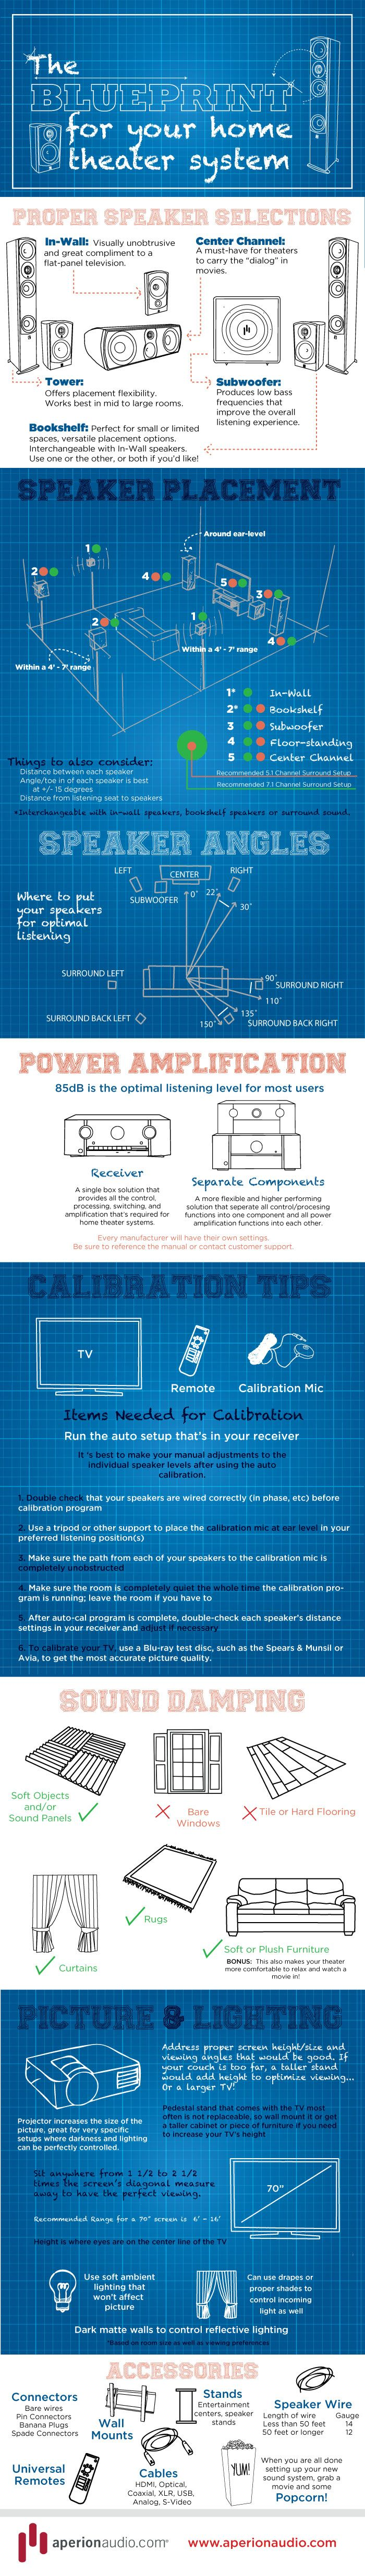 Disenos de casas planos trabajos caseros sala cine en casa also blueprint for your home theater system infographic tech rh co pinterest